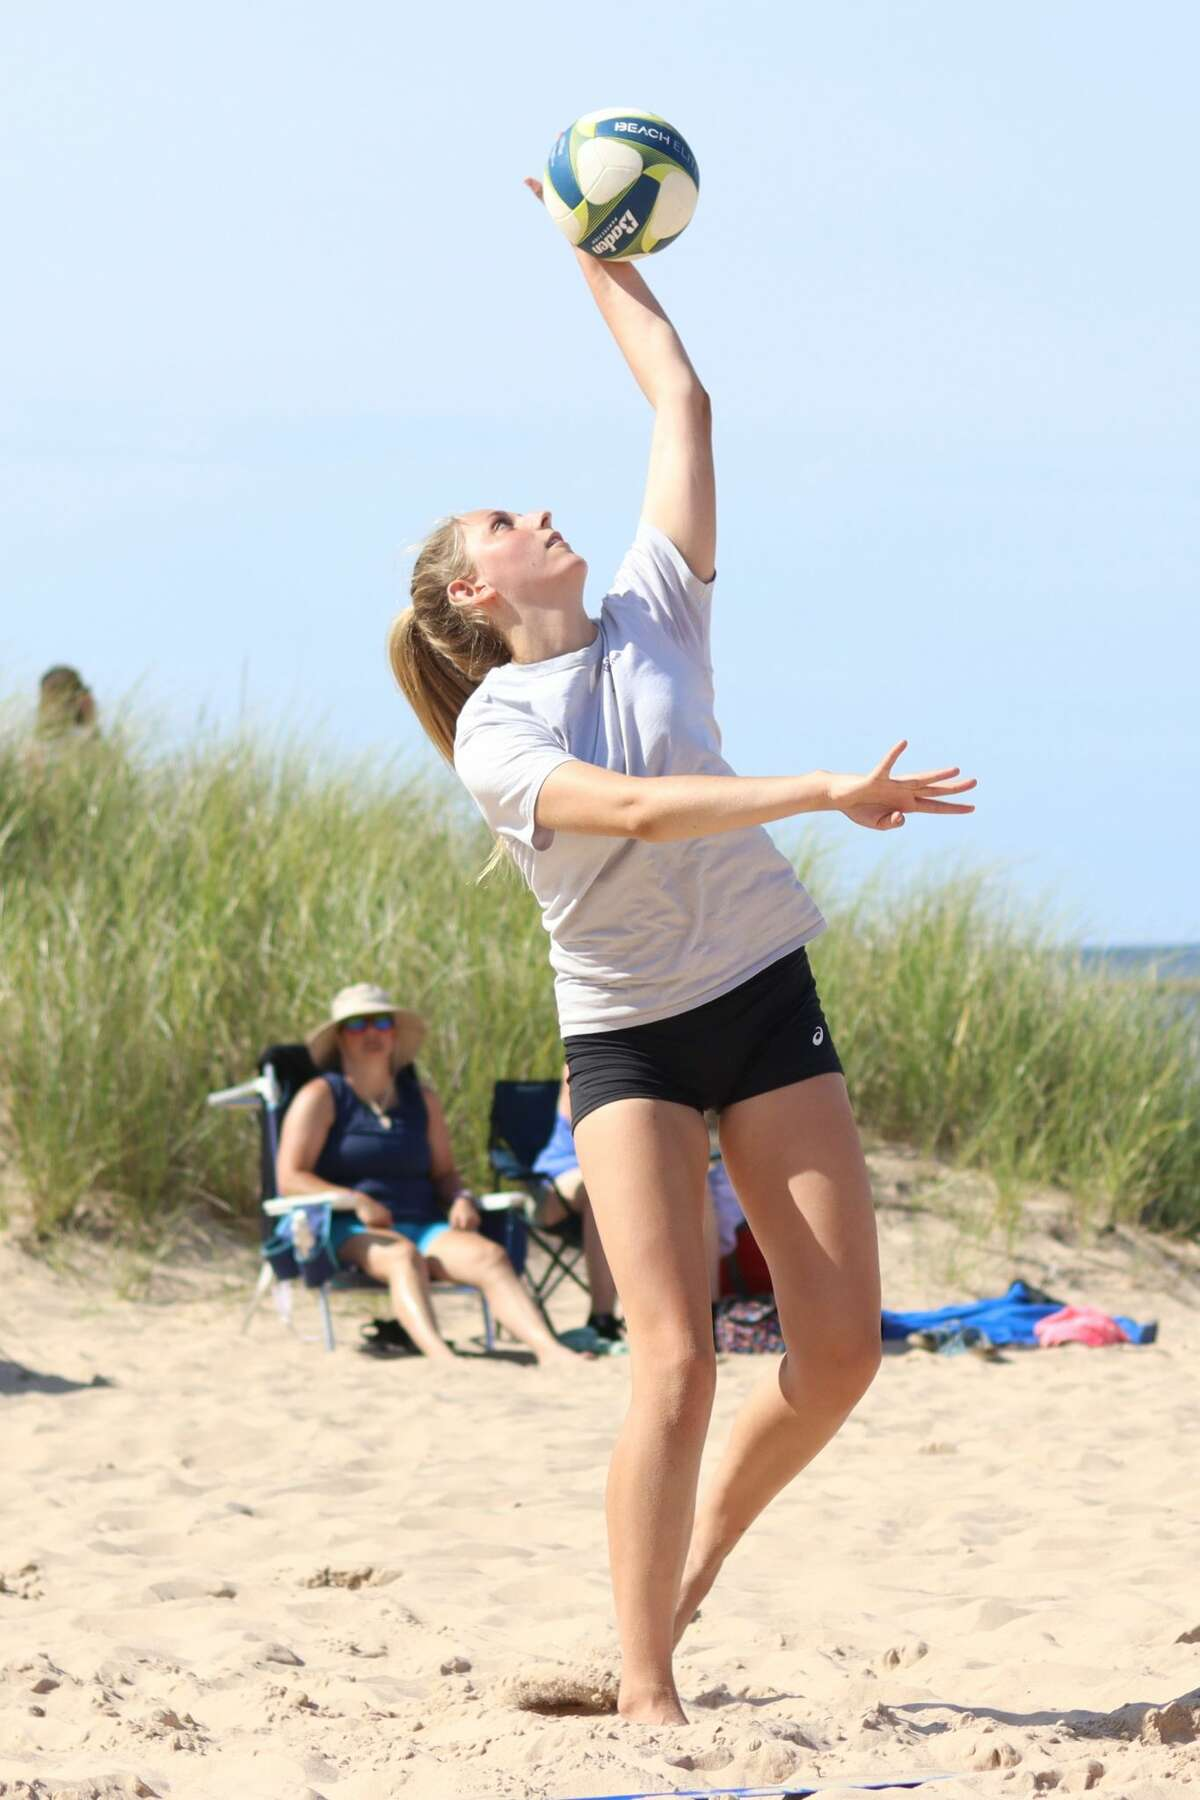 Nearly three dozen teams compete in a youth volleyball tournament at Frankfort Beach on July 11.